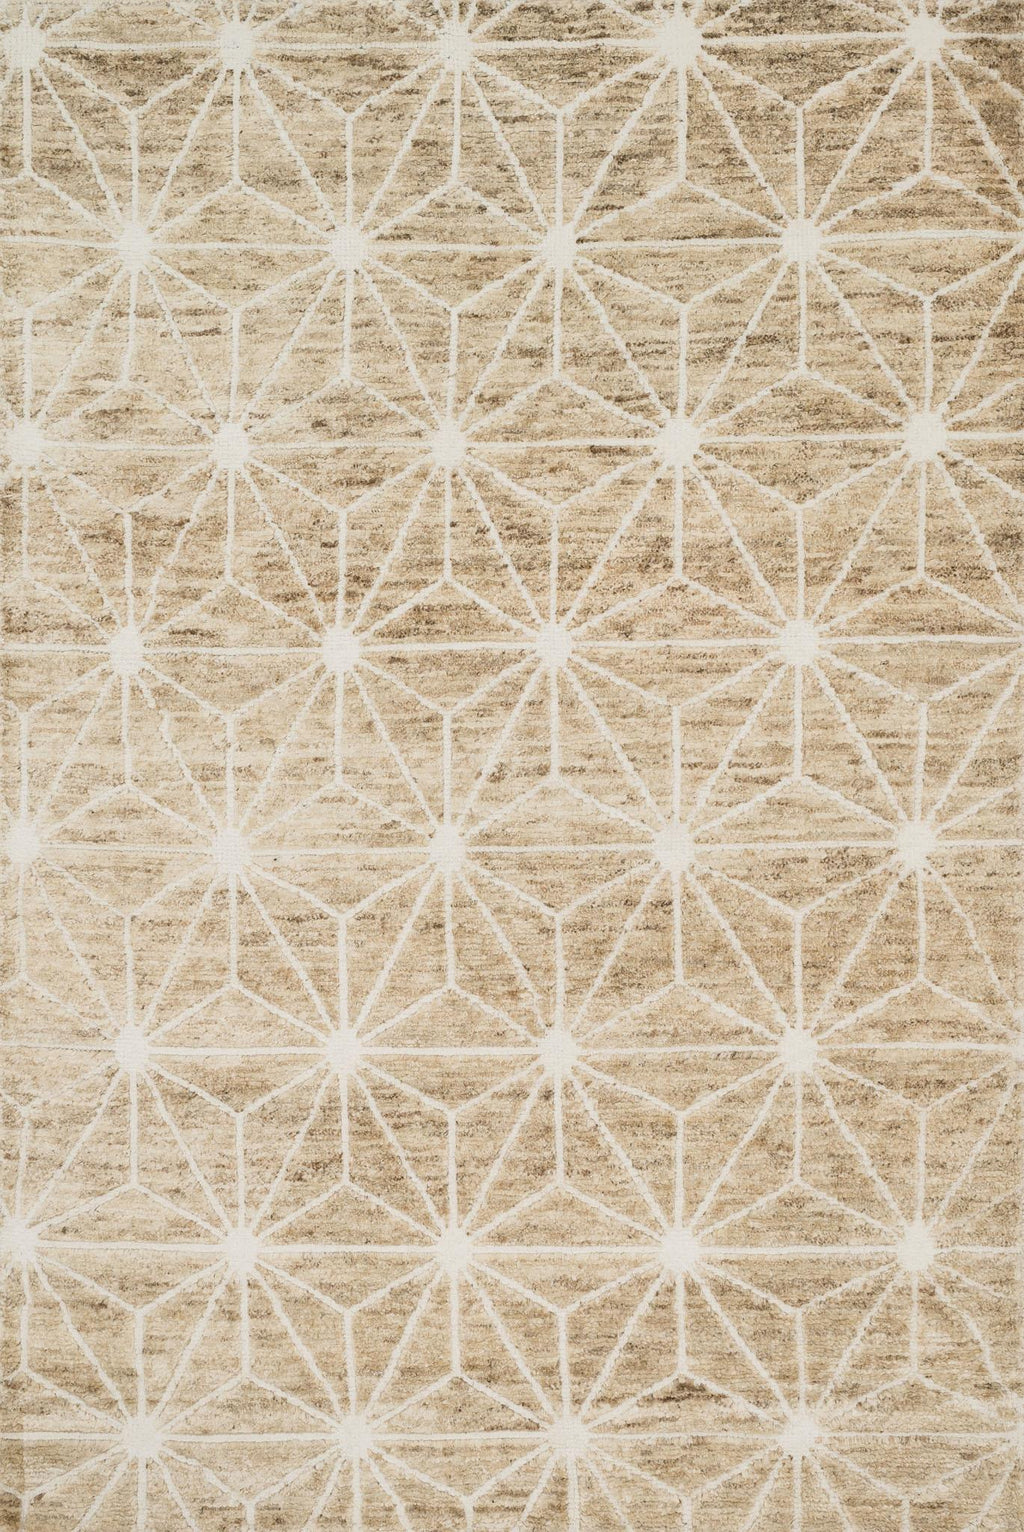 SAHARA Collection Rug  in  IVORY Ivory Small Hand-Knotted Jute/Wool